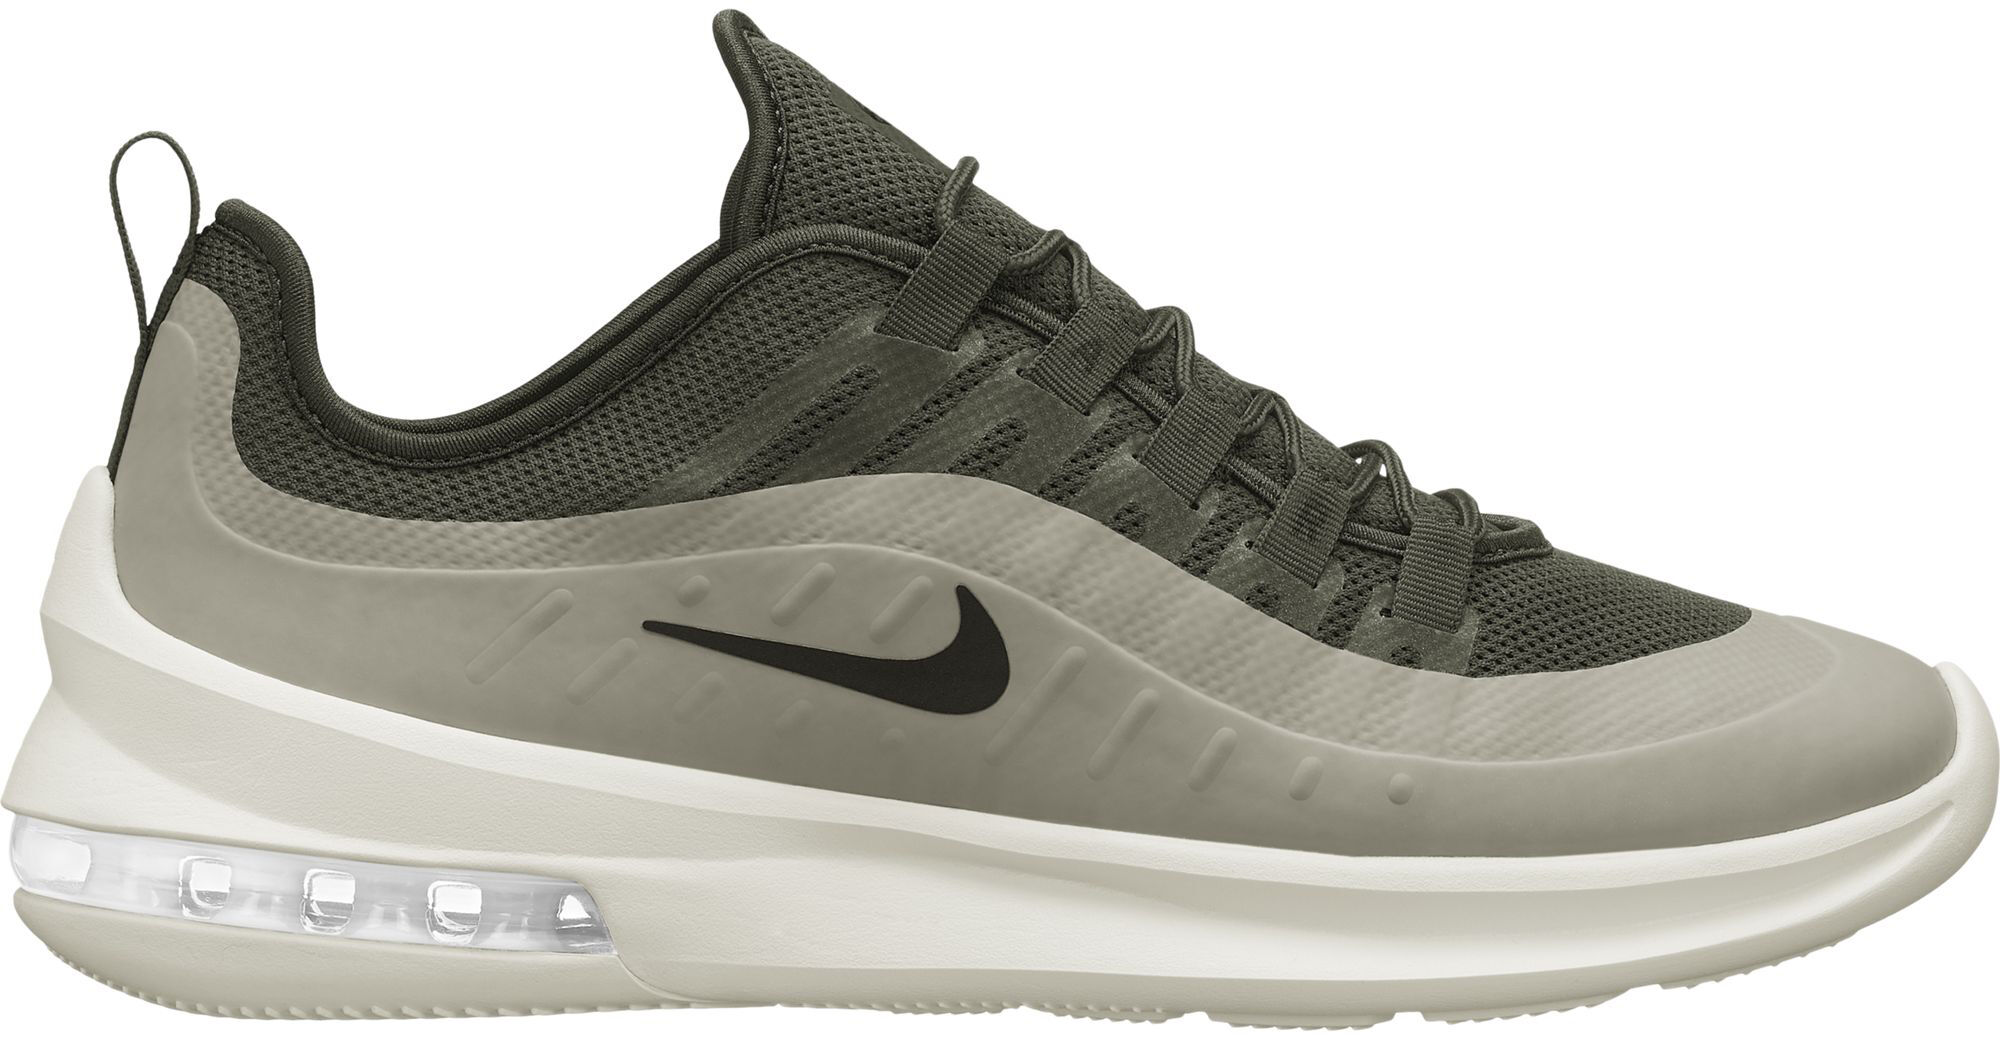 Outlet de sneakers Nike Air Max Axis Intersport marrones